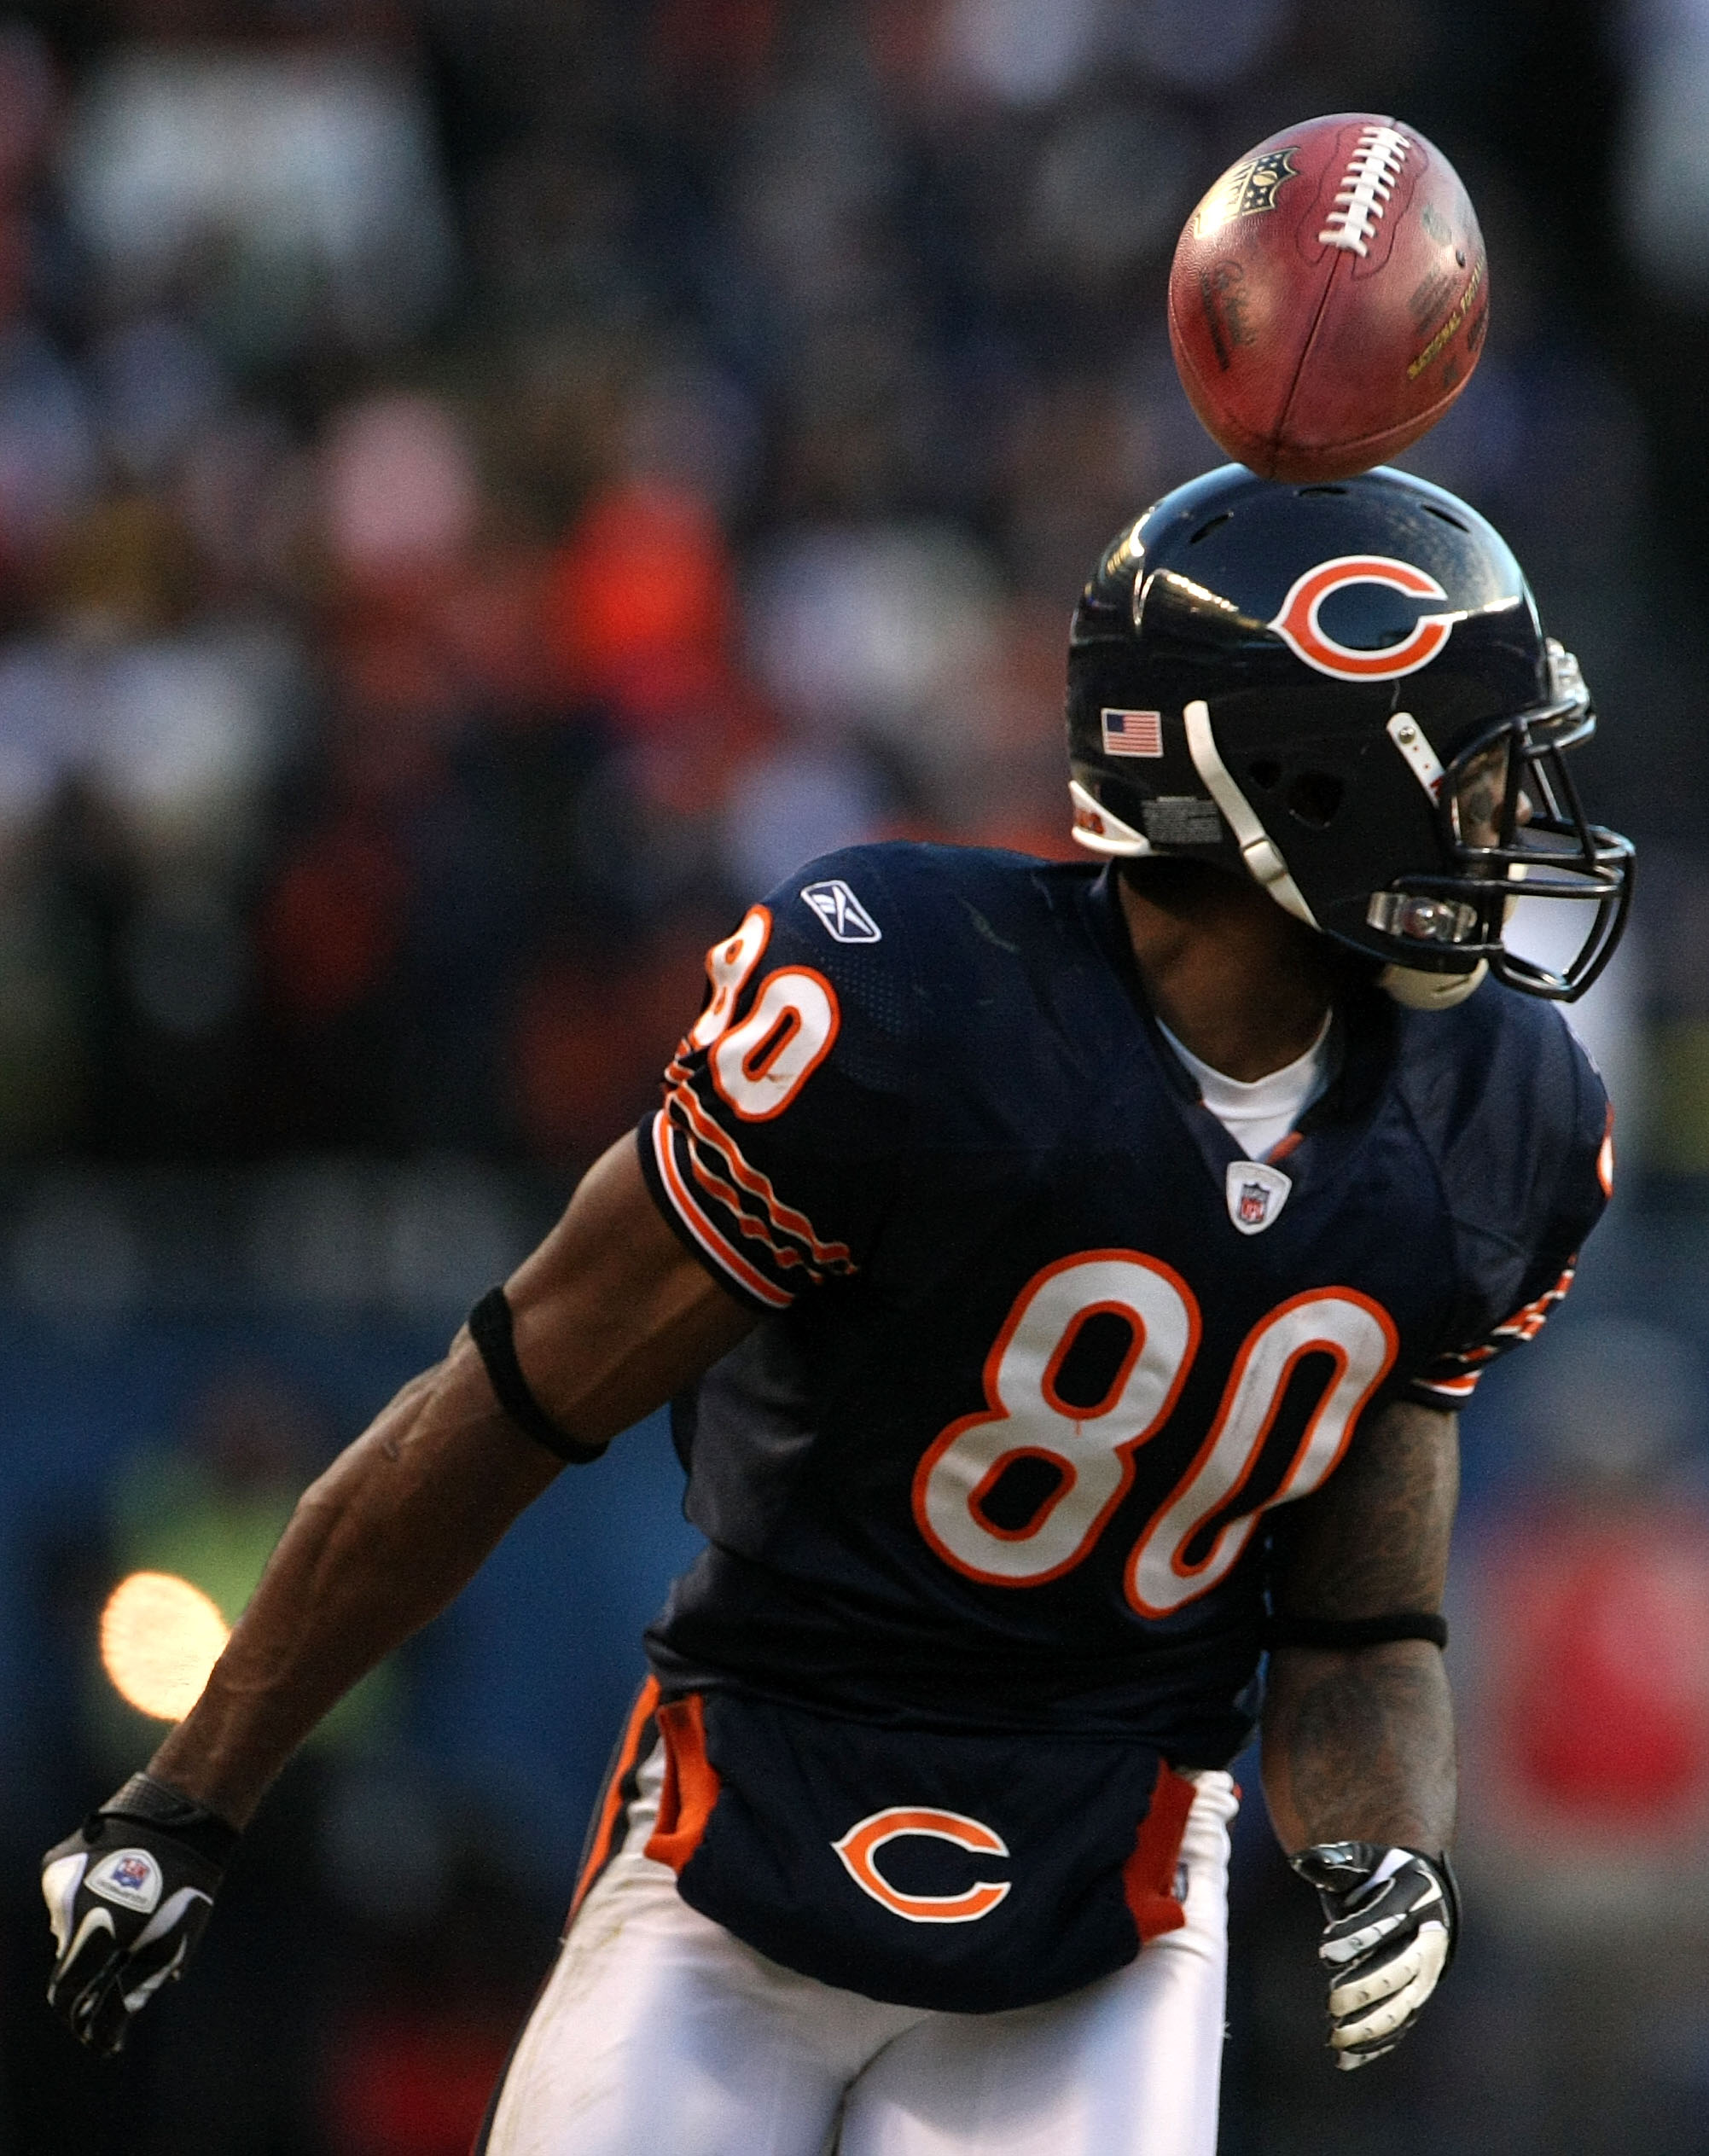 CHICAGO, IL - JANUARY 23:  Earl Bennett #80 of the Chicago Bears has the ball fly over his head while taking on the Green Bay Packers in the NFC Championship Game at Soldier Field on January 23, 2011 in Chicago, Illinois.  (Photo by Doug Pensinger/Getty I